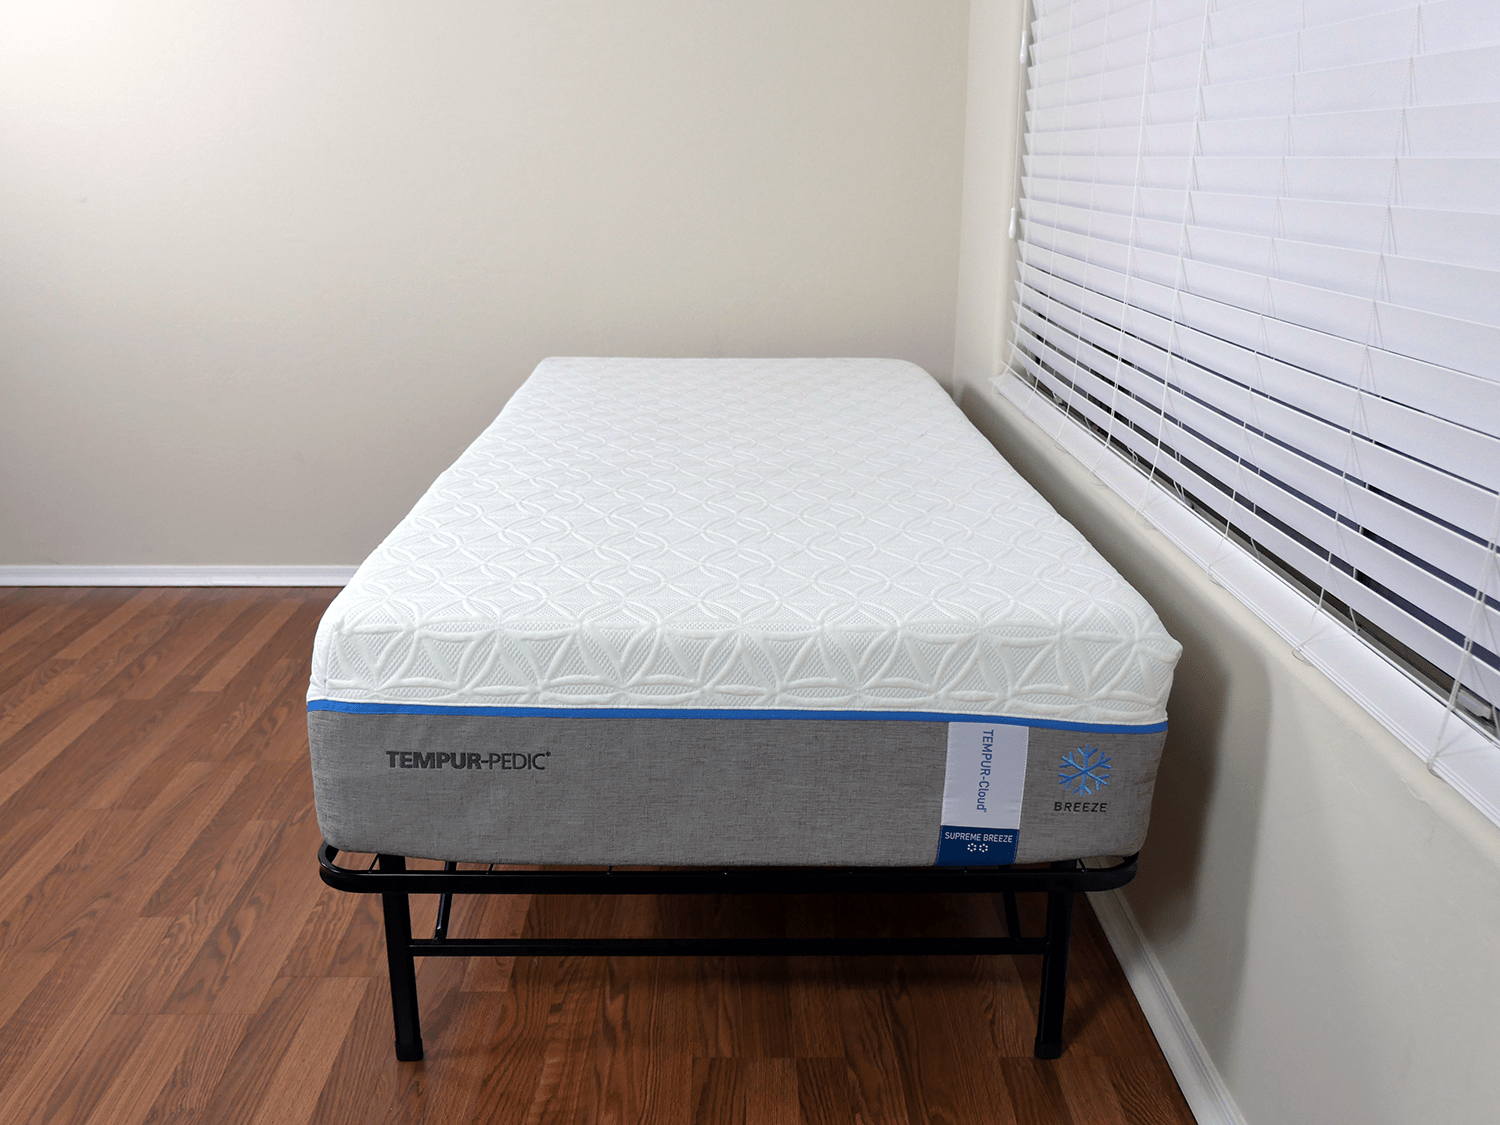 tempurpedic-cloud-supreme-breeze-mattress-2 Amerisleep vs Tempurpedic Mattress Review